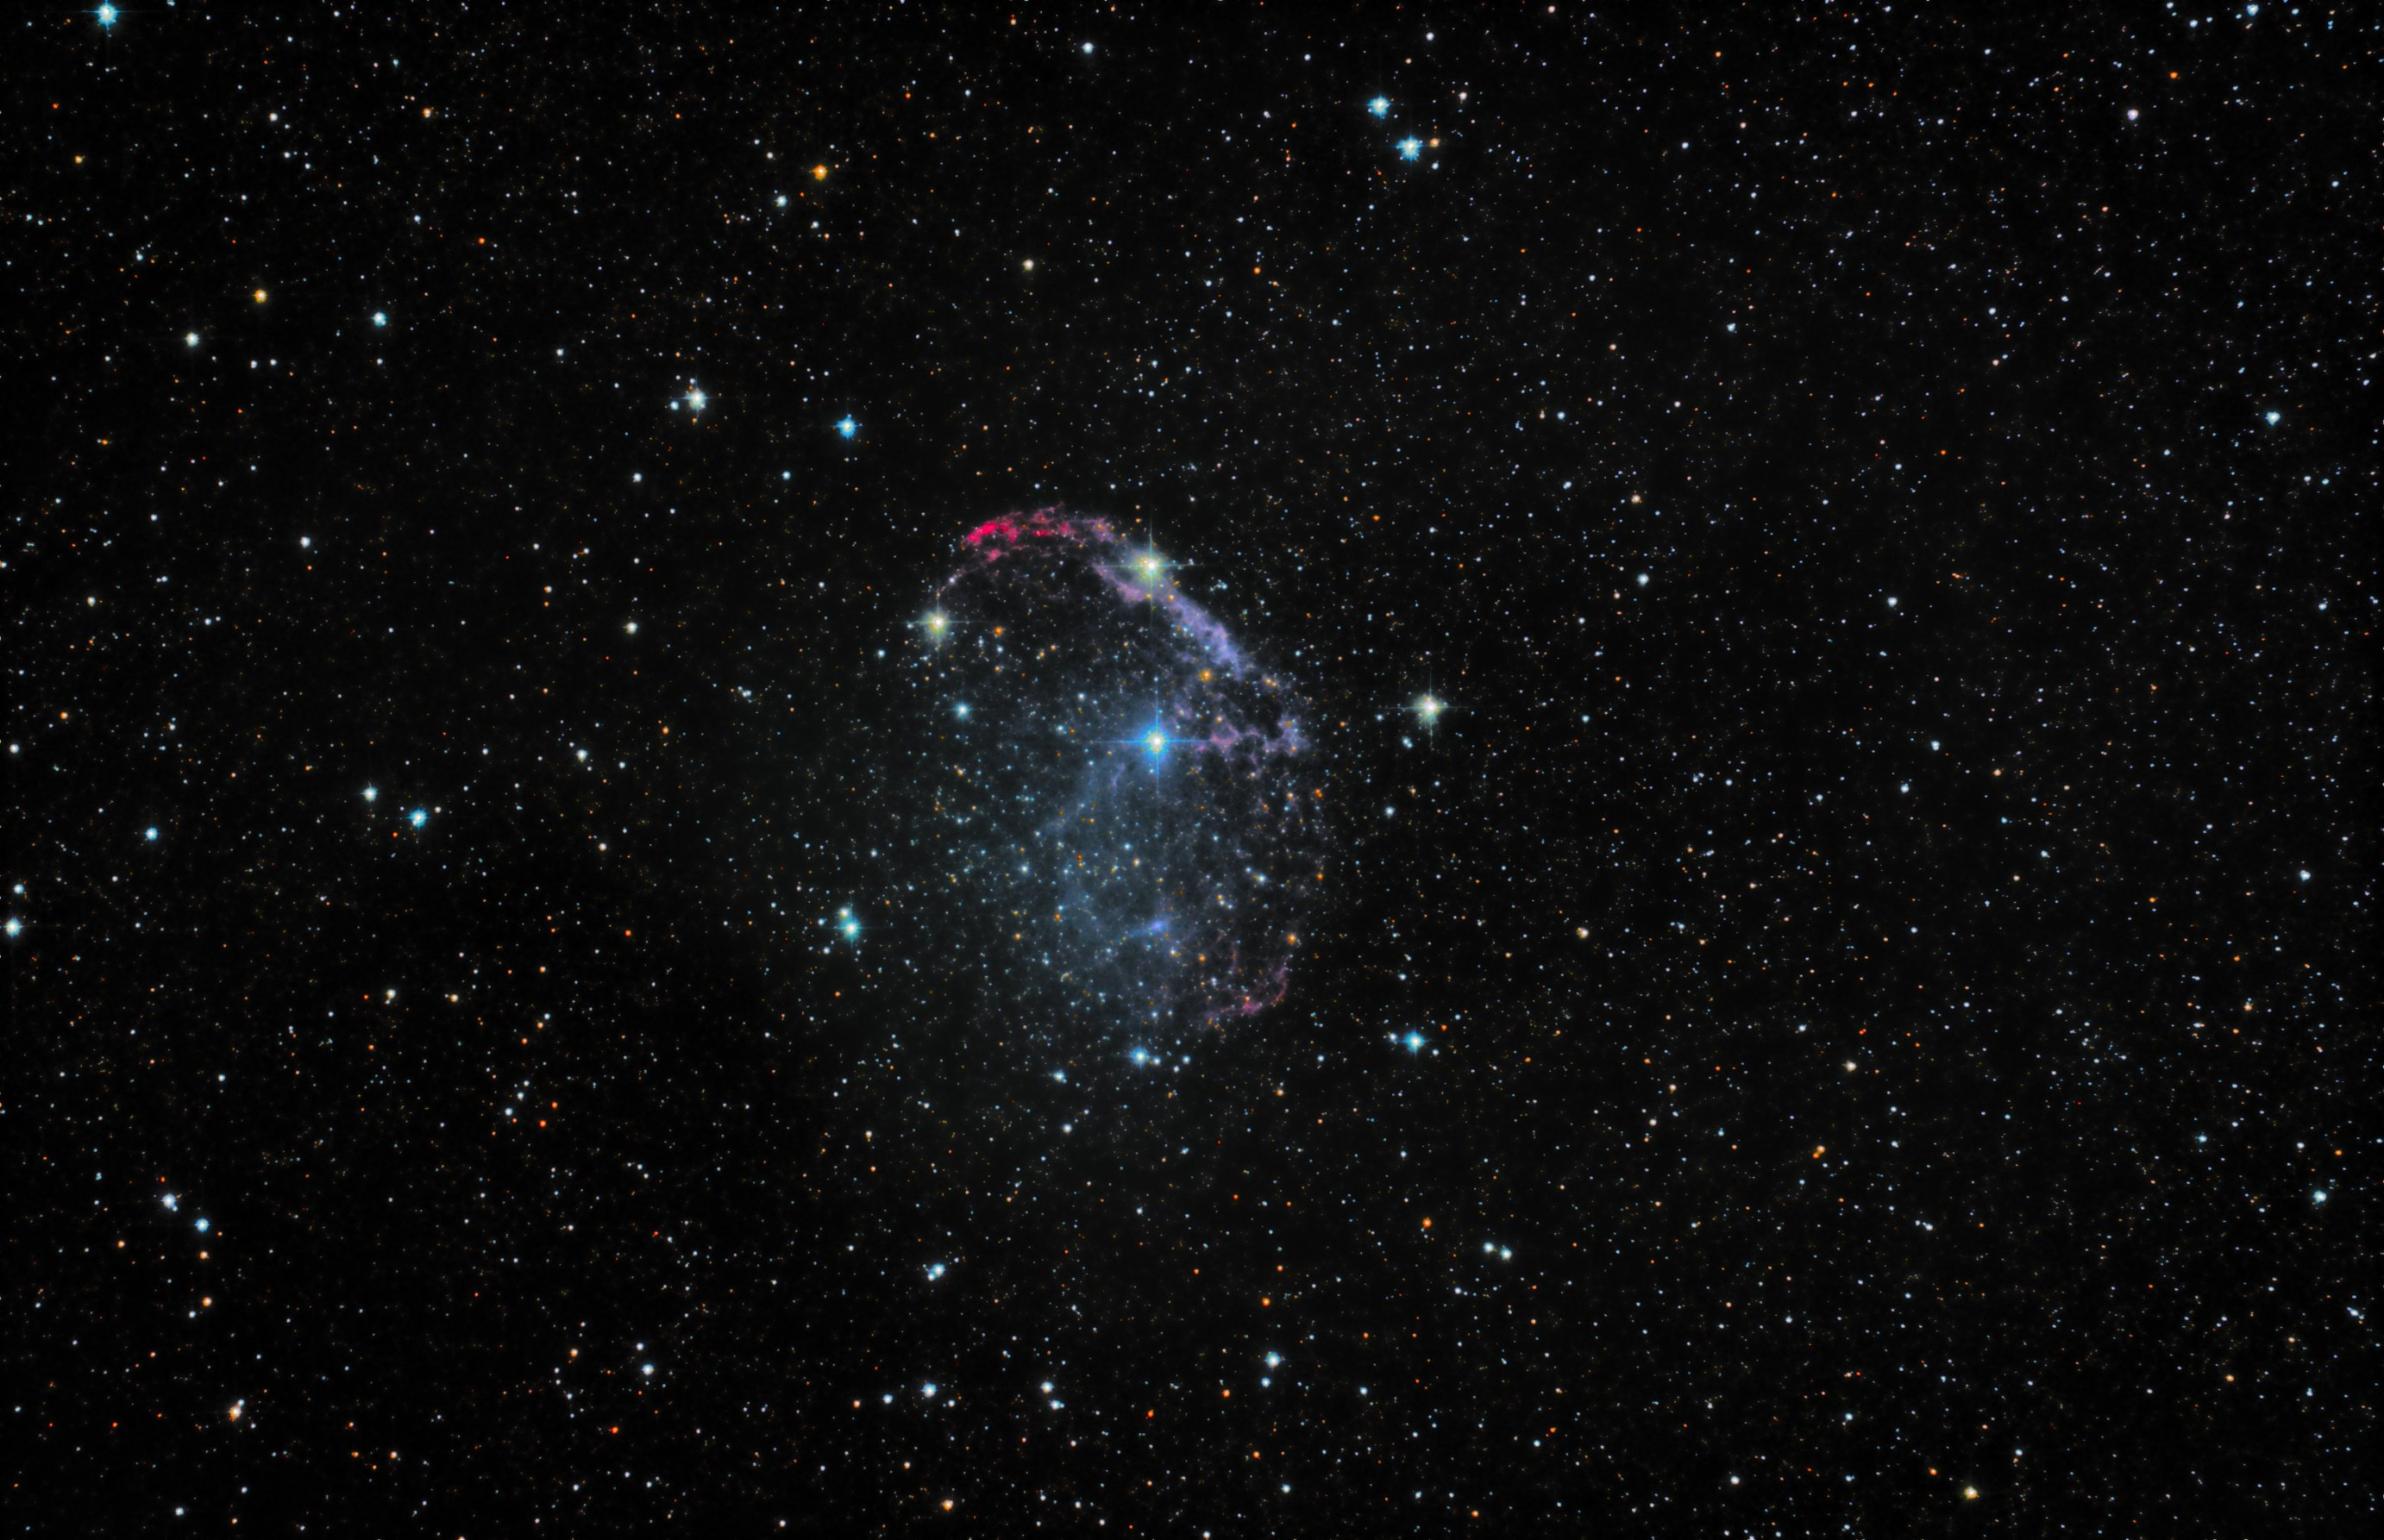 r_crescent neb_stackedx3data10hrsmk2.jpg